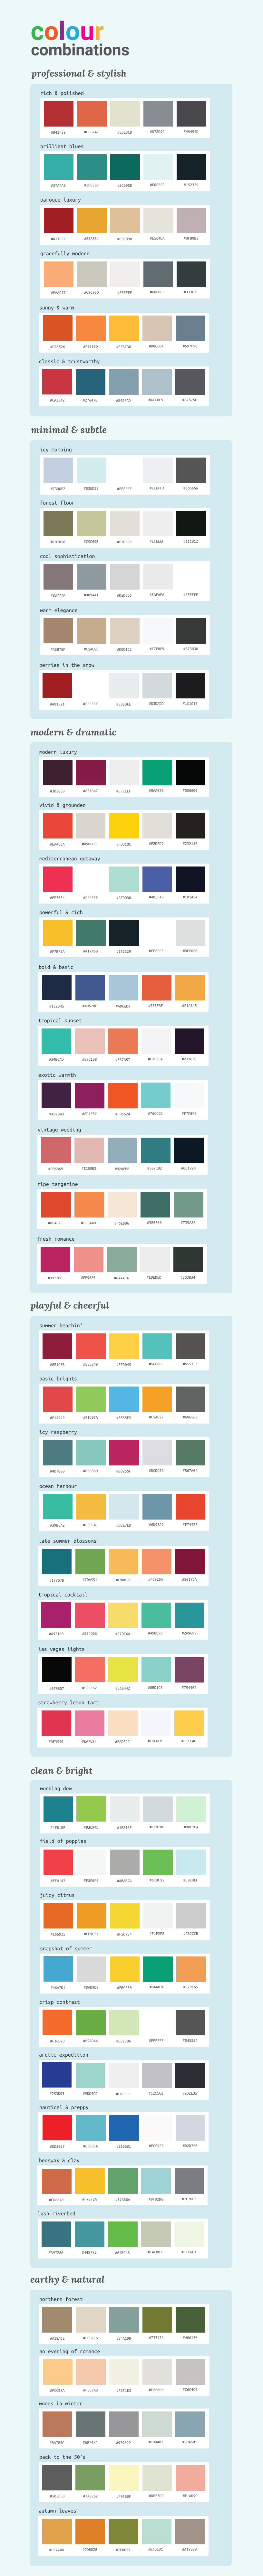 50 Color Palettes Infographic - How To Pick Colors